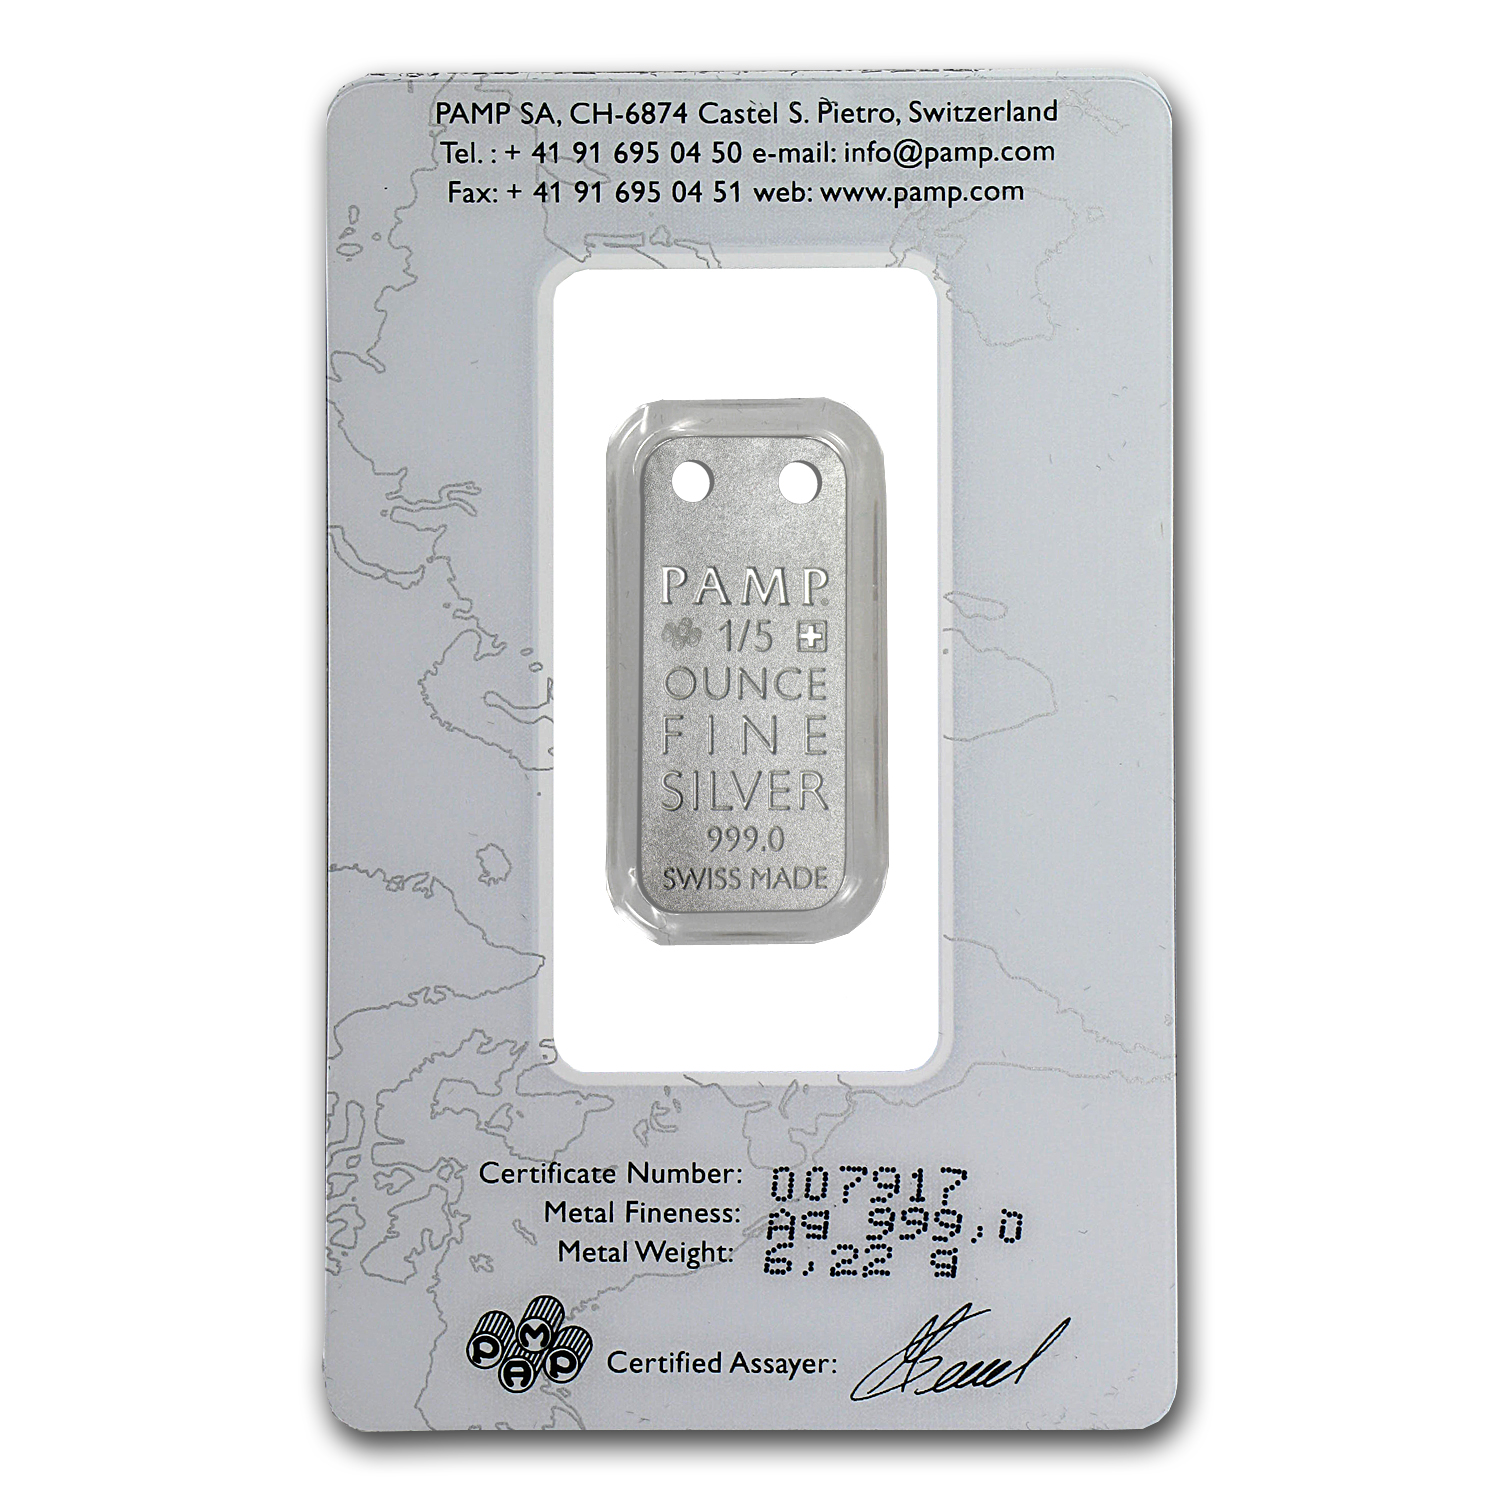 Orchid - 1/5 oz Proof Silver Pamp Ingot Pendant